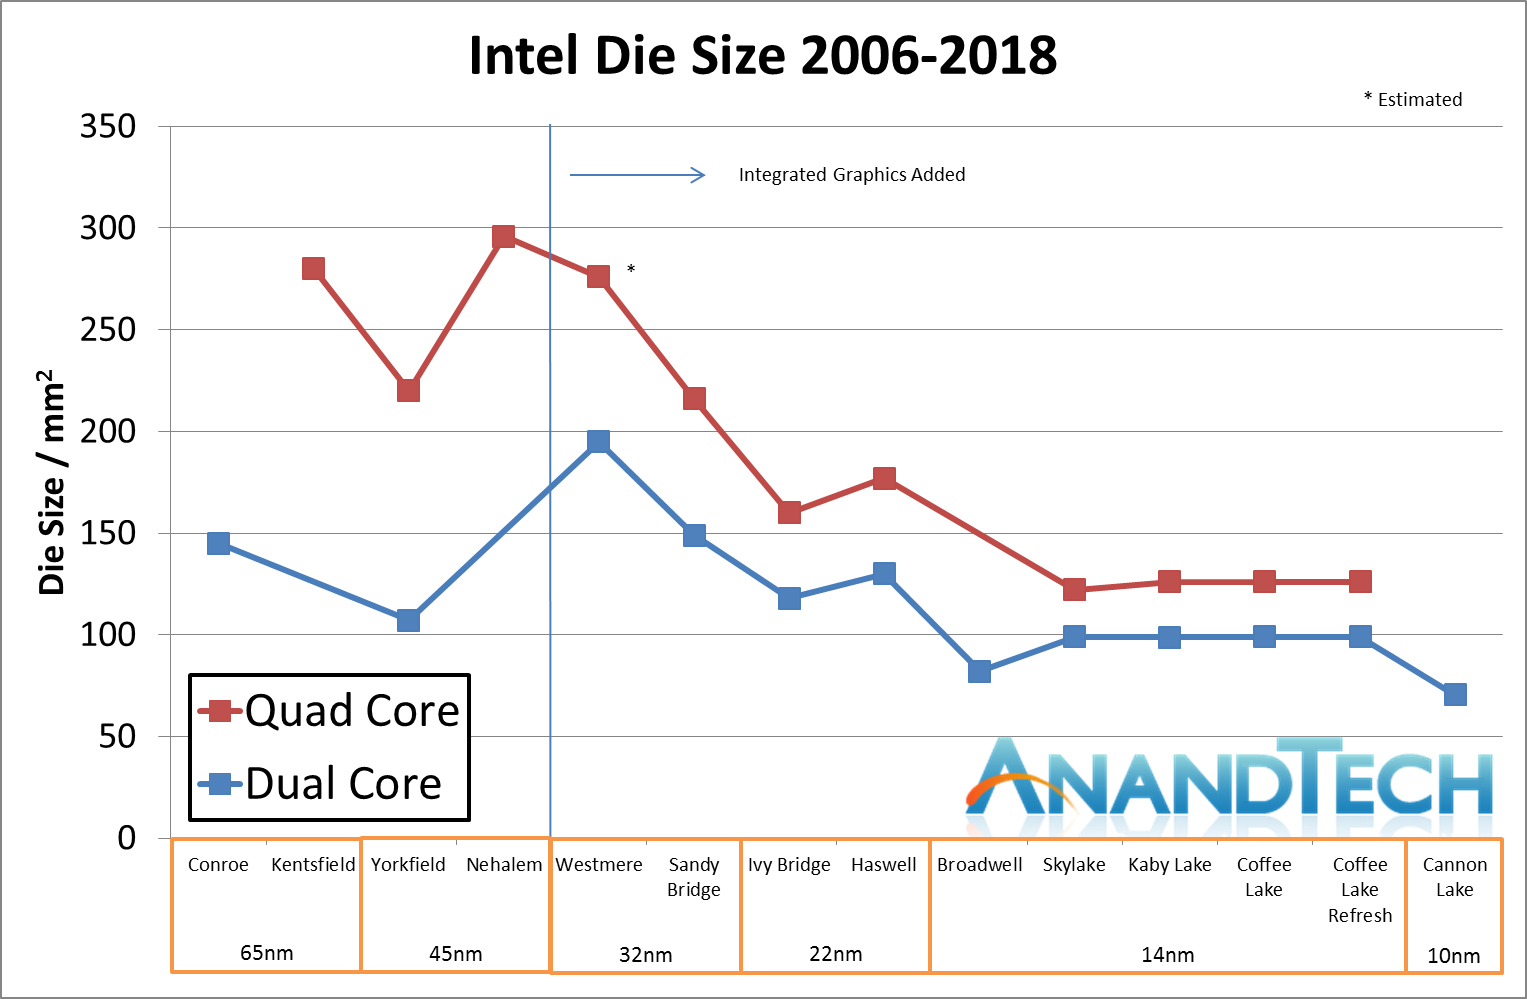 Intel's 10nm Cannon Lake Silicon Design - Intel's 10nm